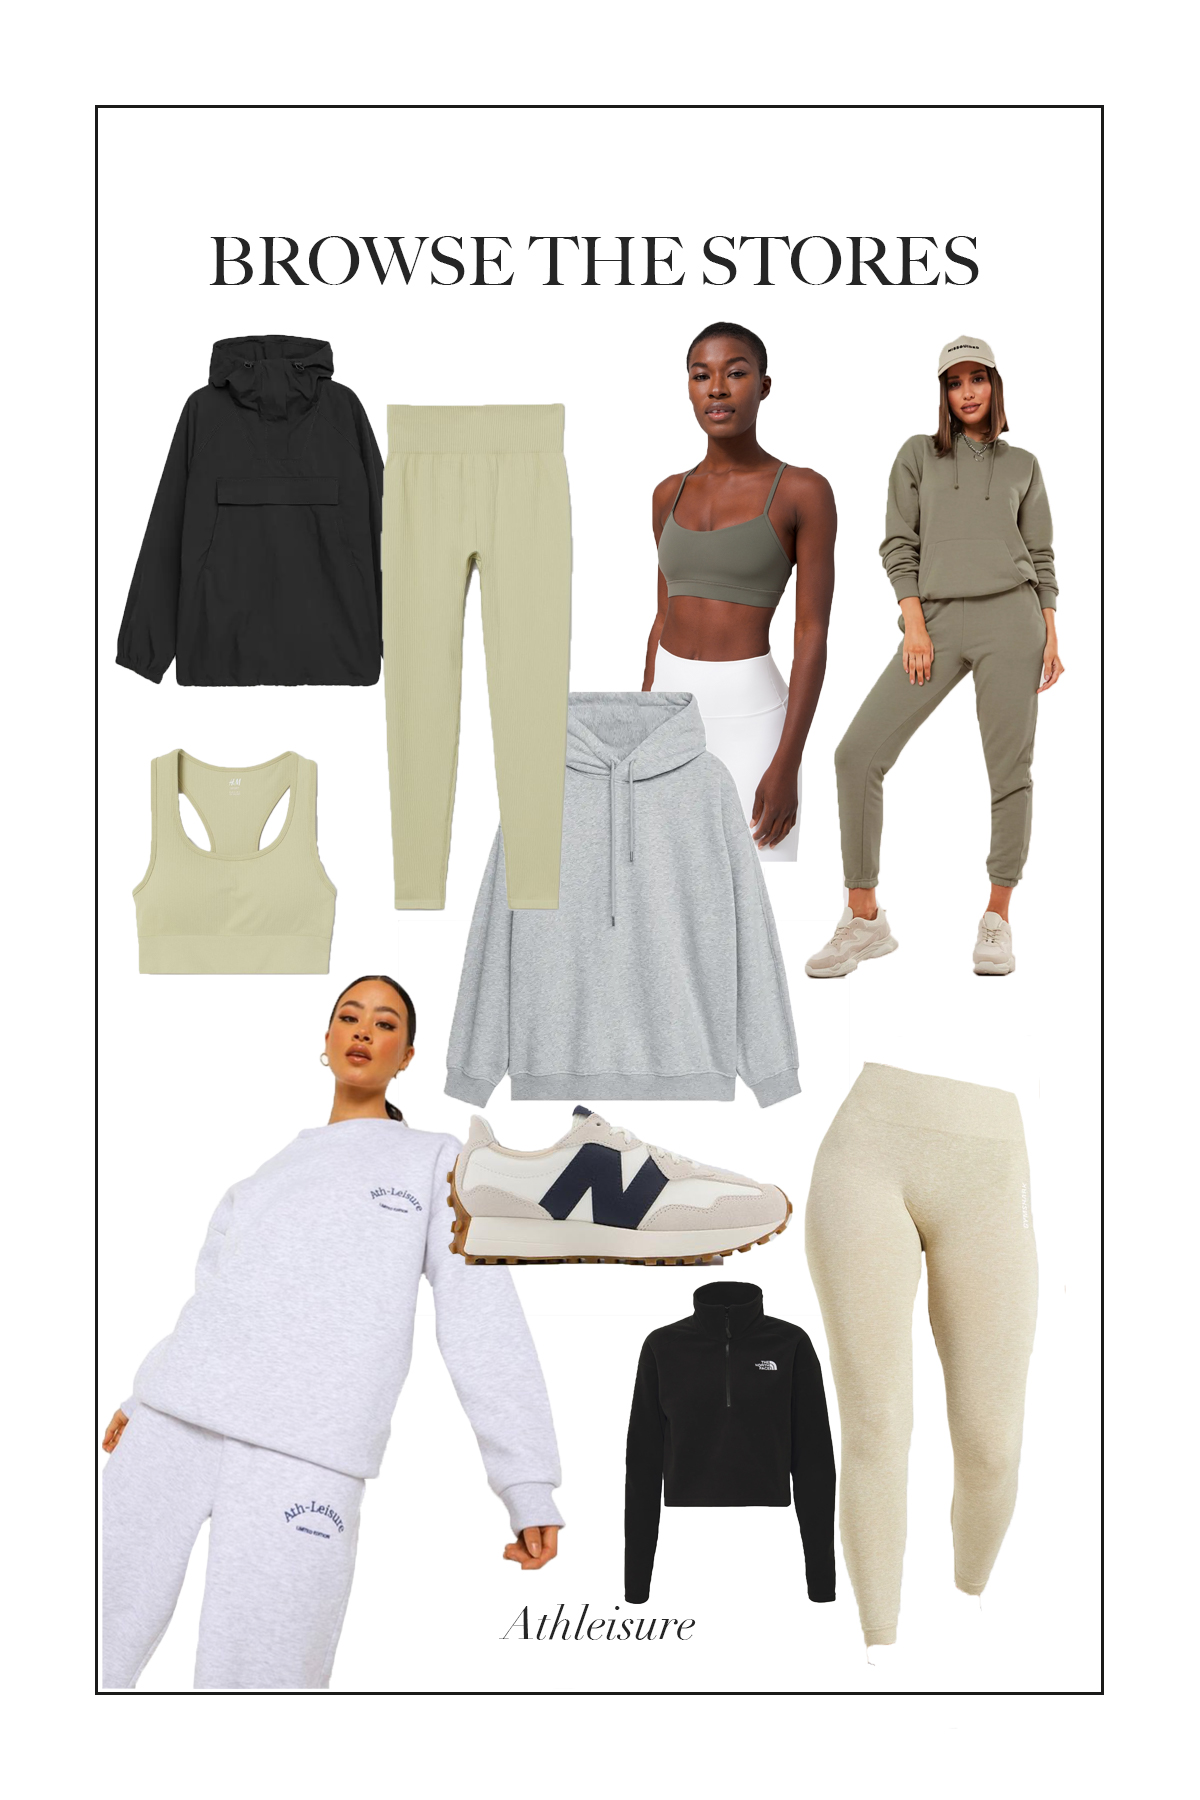 If you are looking for comfy workout clothes which you can style easily for every day use here are my top athleisure picks current available...